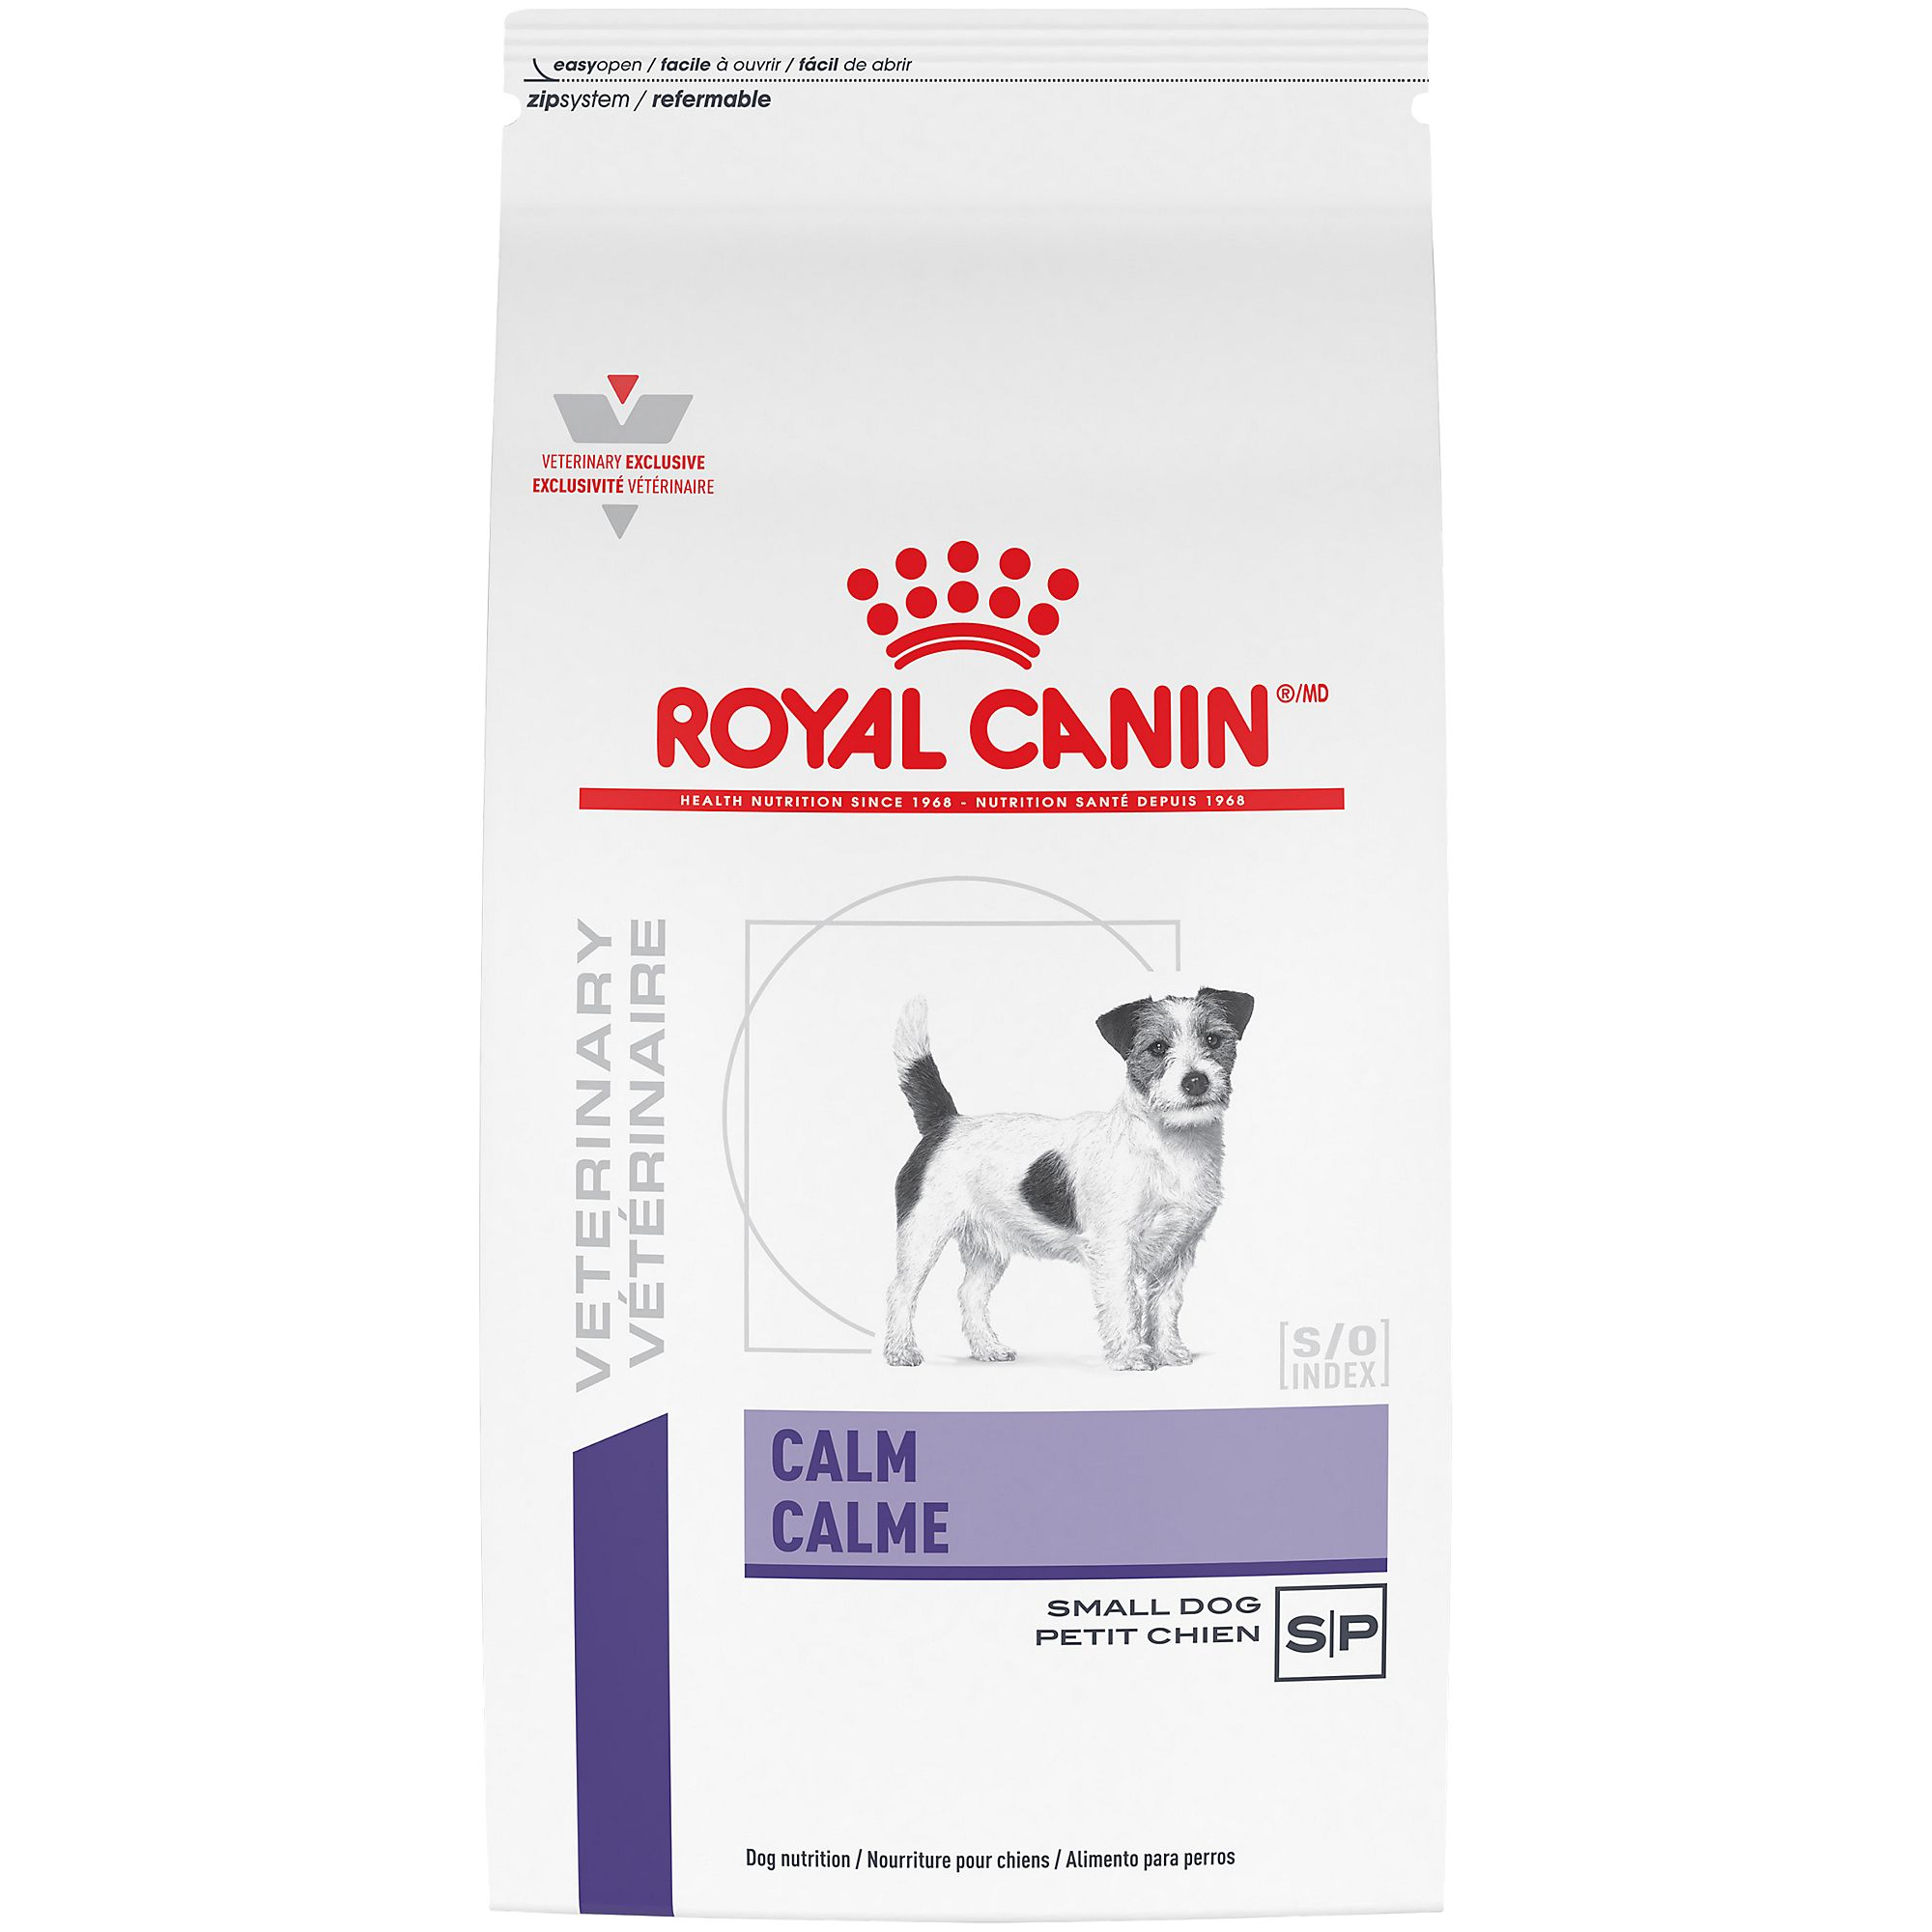 Royal Canin Calm Dog Food size: 8.8 Lb, Chicken, Kibble, Adult dogs 1 year and older, Brewer's Rice 5206383